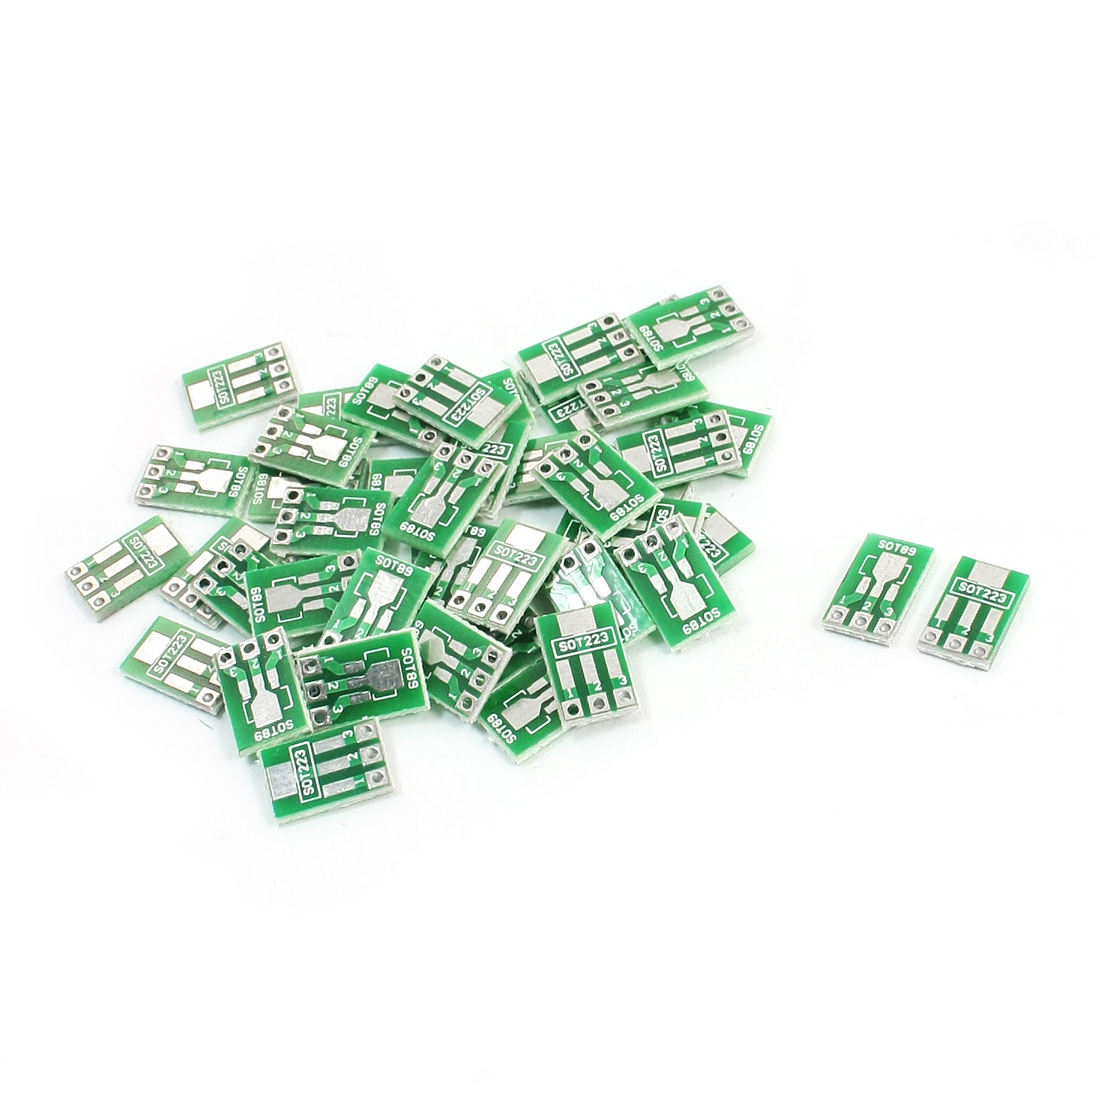 50Pcs 1.27mm SOT223/SOT89 to 2.54mm DIP SMD SMT IC PCB Adapter Socket